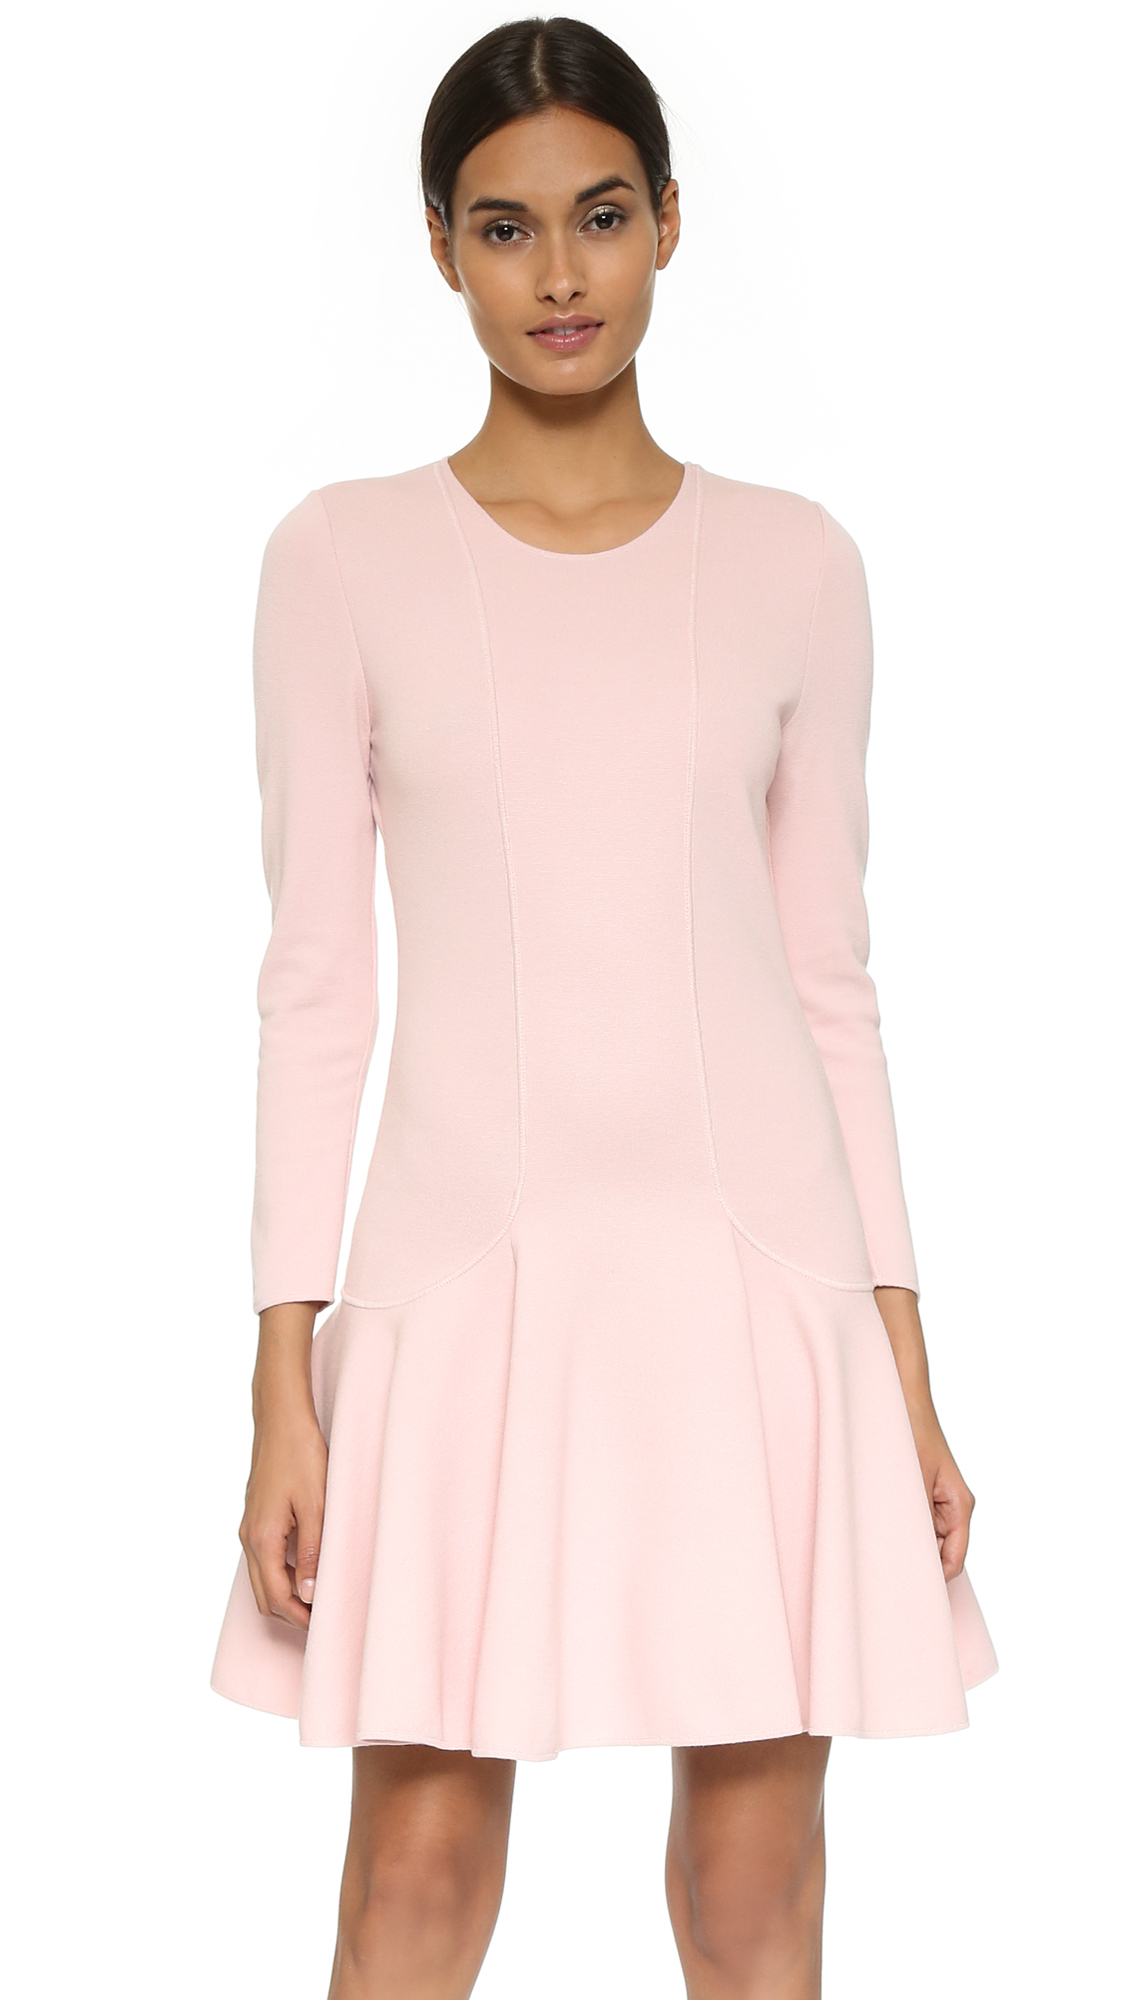 Giambattista valli Swingy Sweater Dress - Light Pink in Pink | Lyst